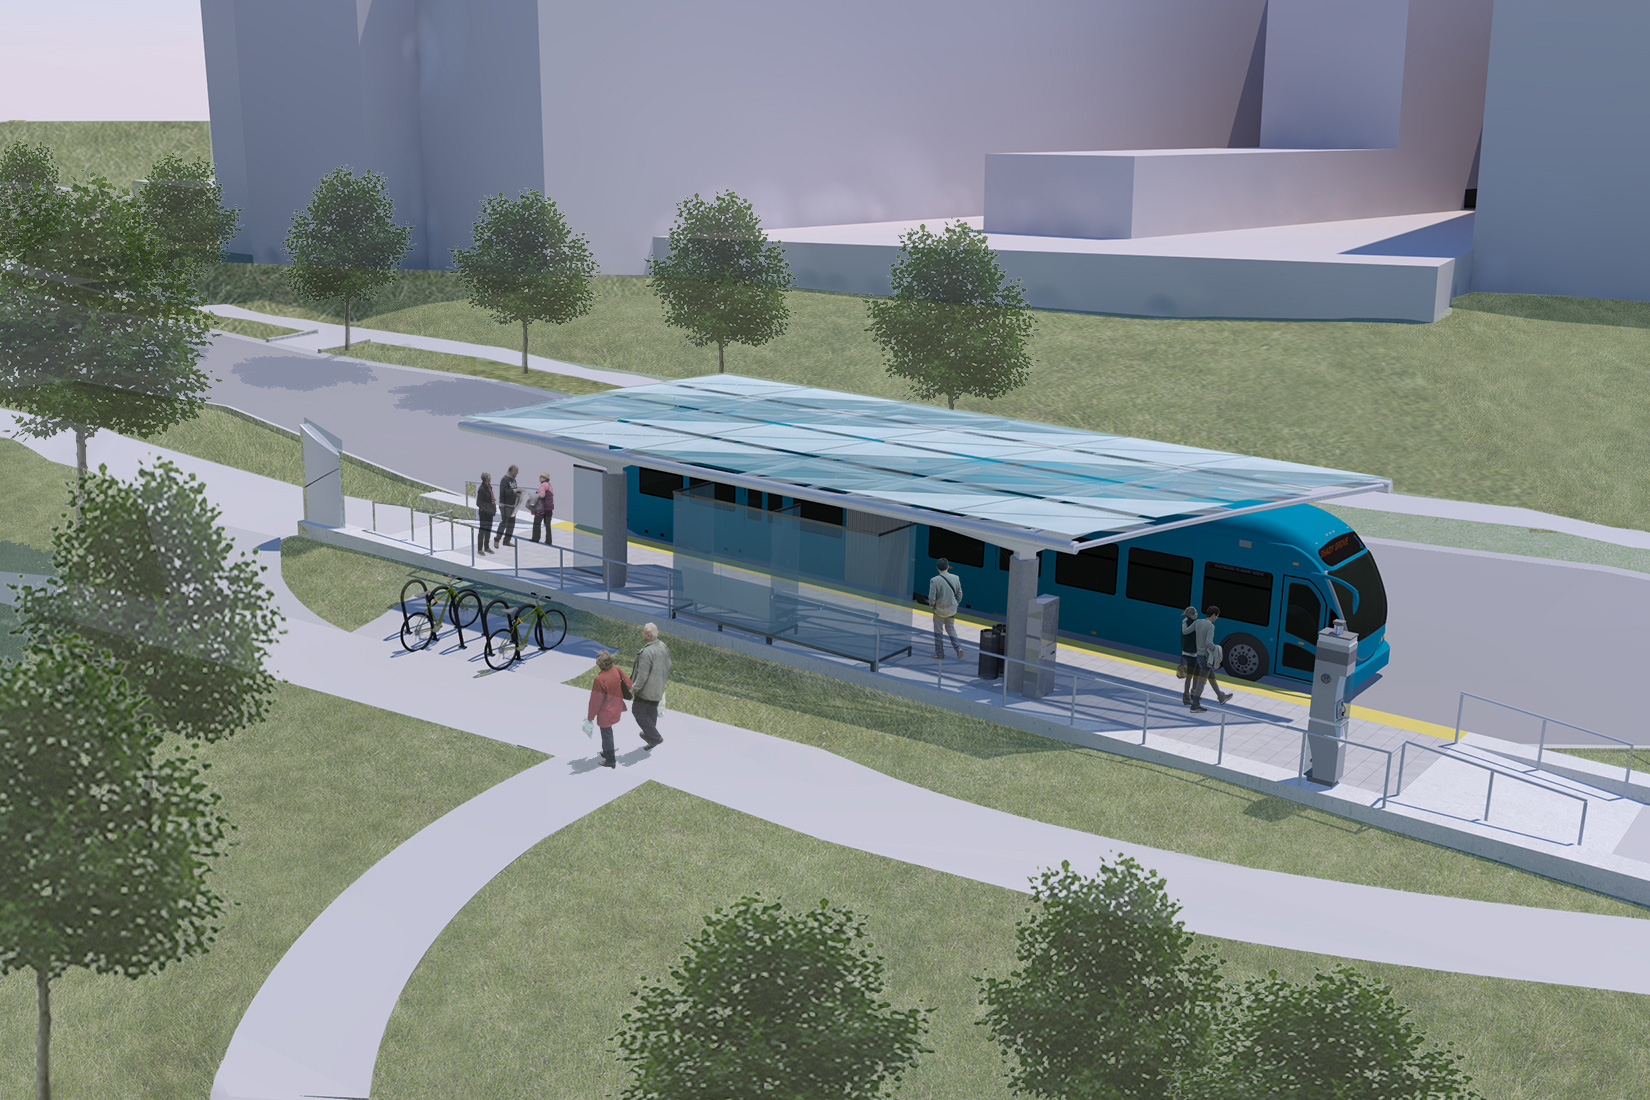 Leggett optimistic about new plan for bus rapid transit